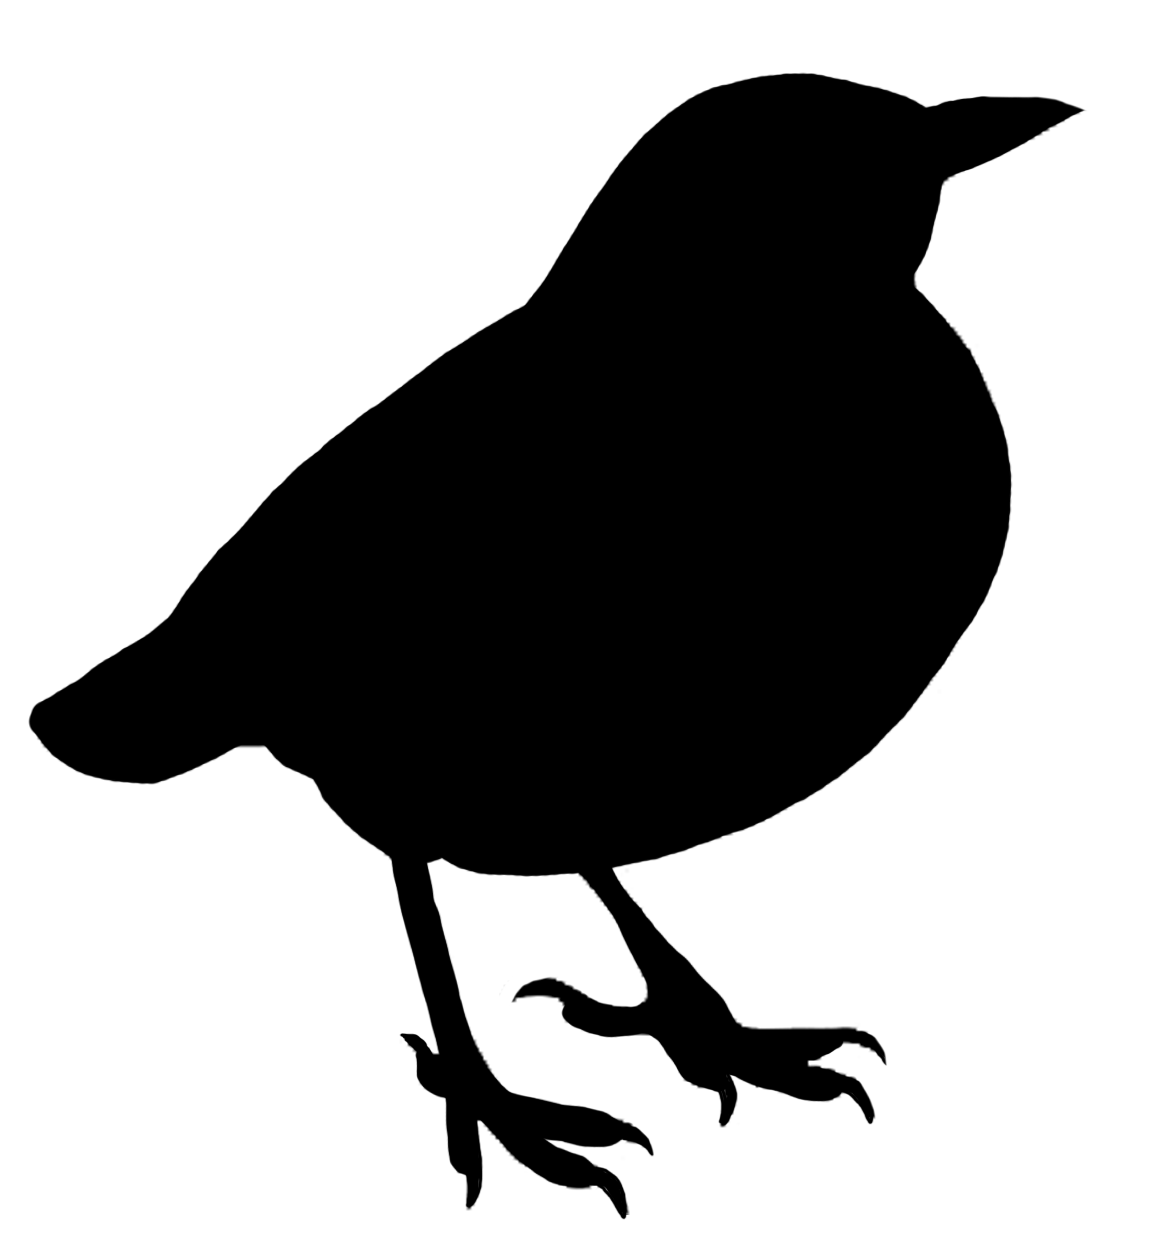 1156x1256 Bird Silhouettes Transparent Png Images